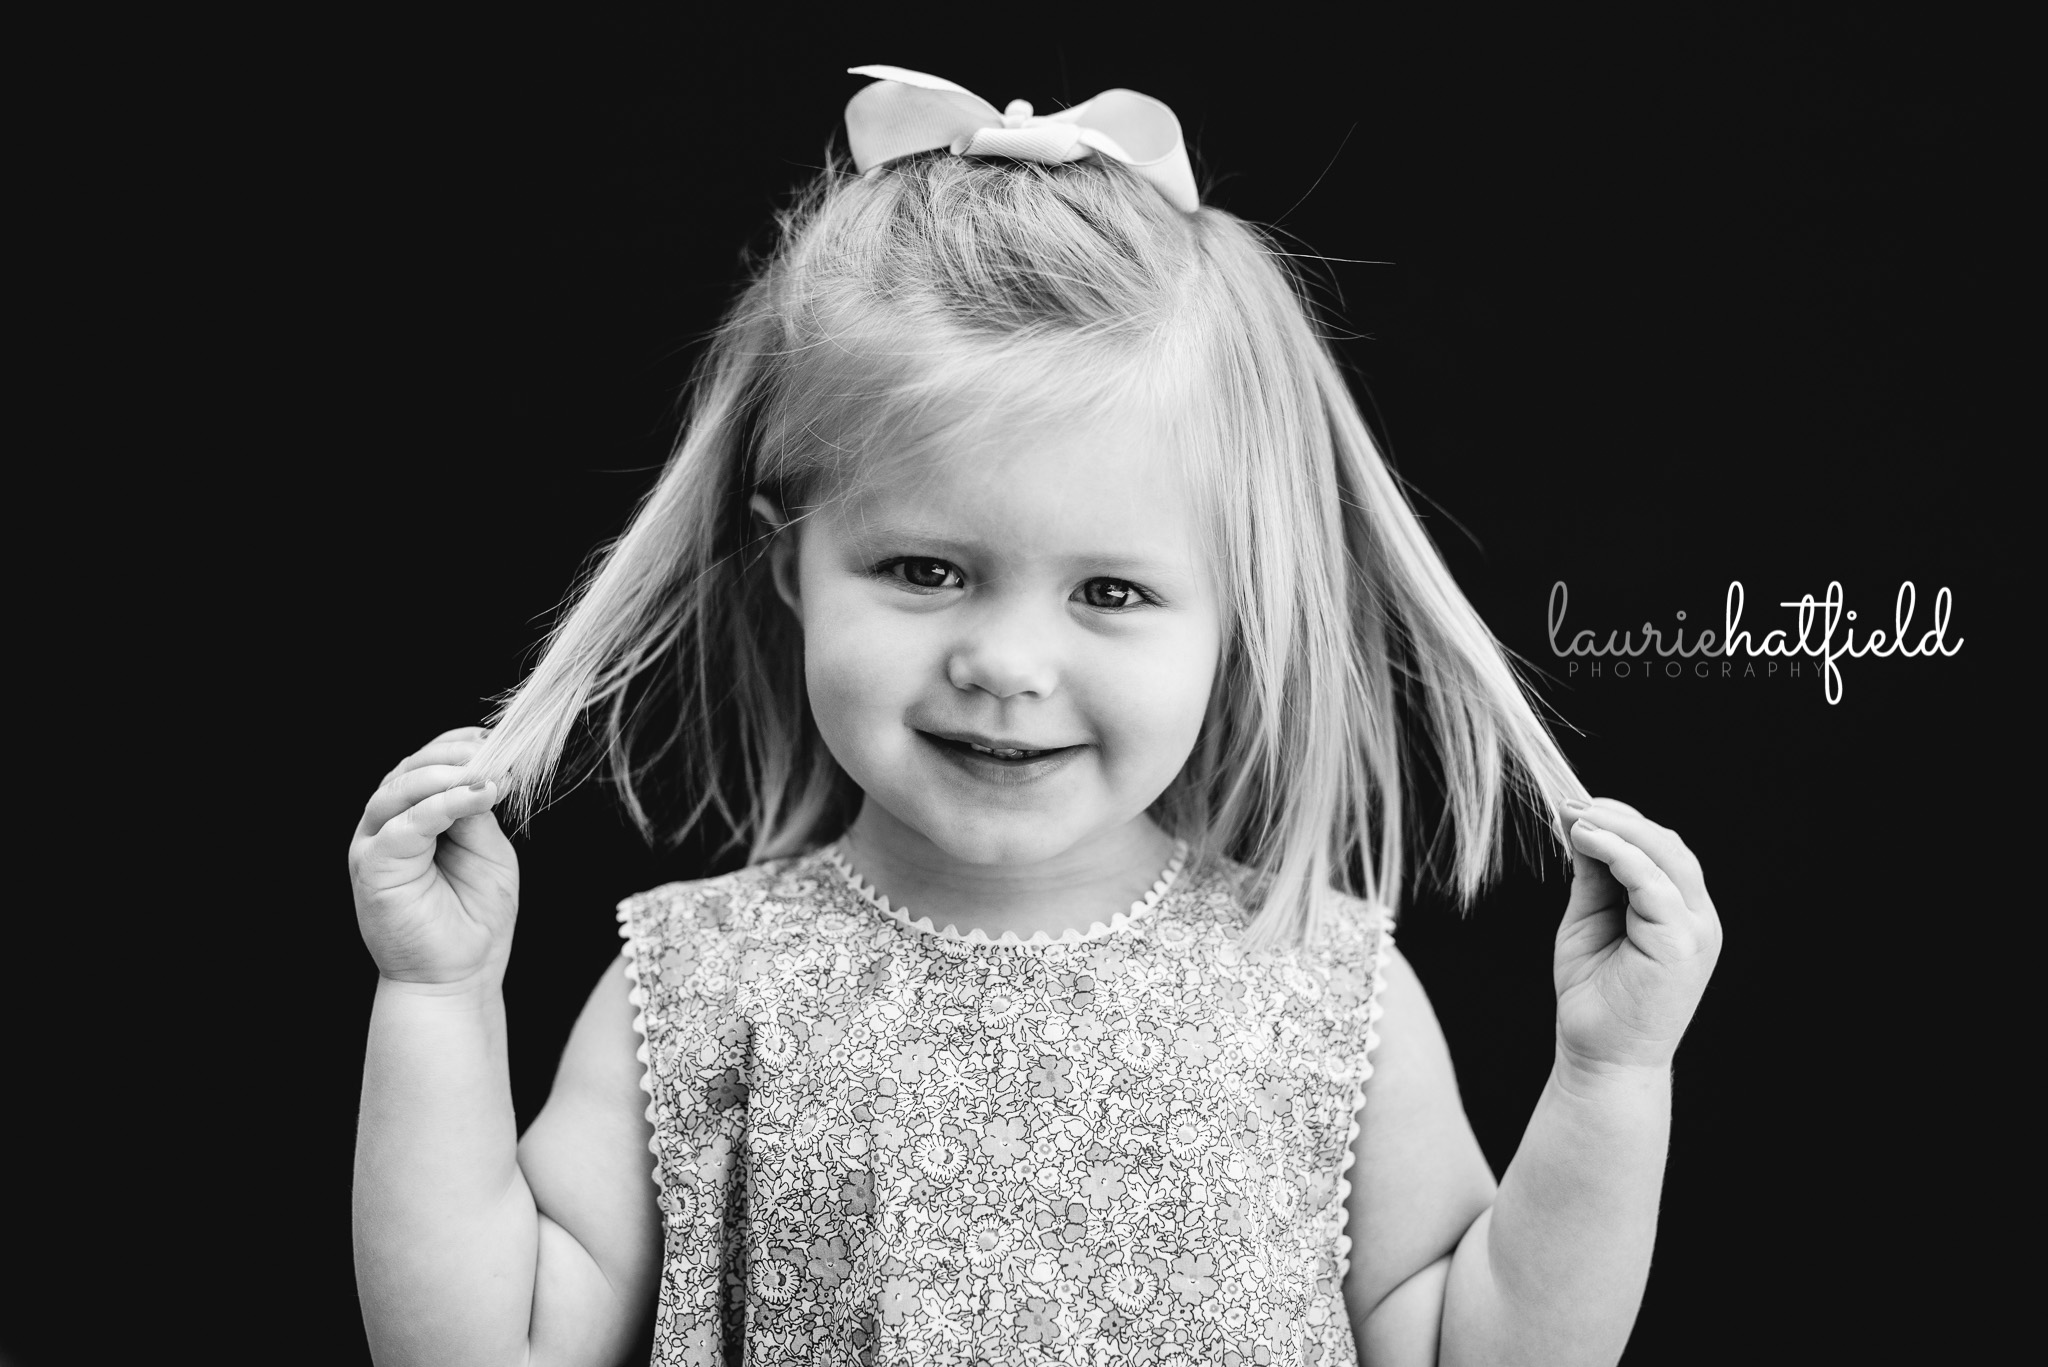 little girl with blonde hair | Gulf Shores AL school photographer